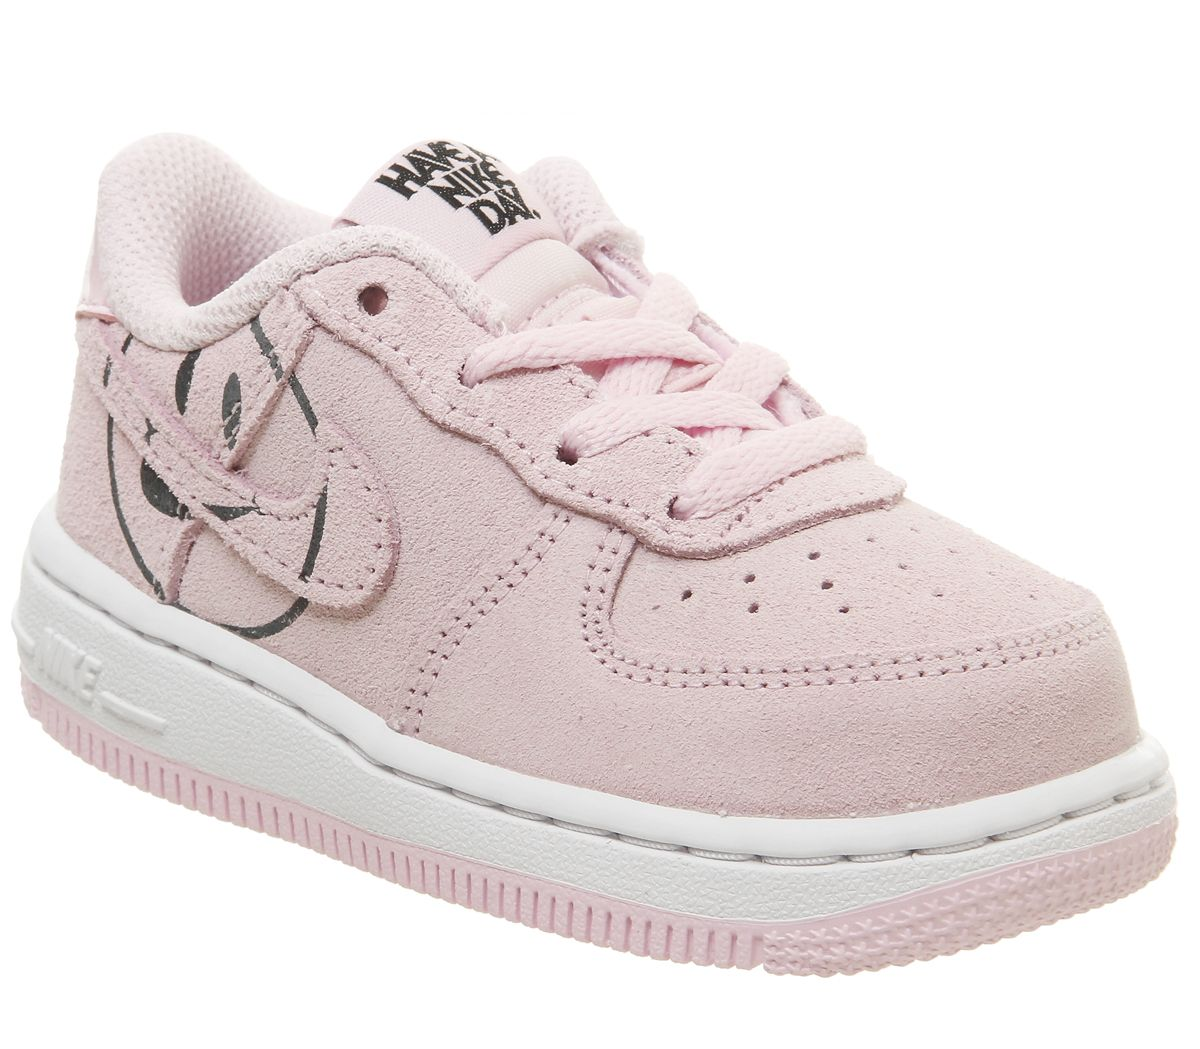 premium selection 450ac 1c9c0 Nike Air Force 1 Lv8 Infant Trainers Pink Foam Smile - Unisex